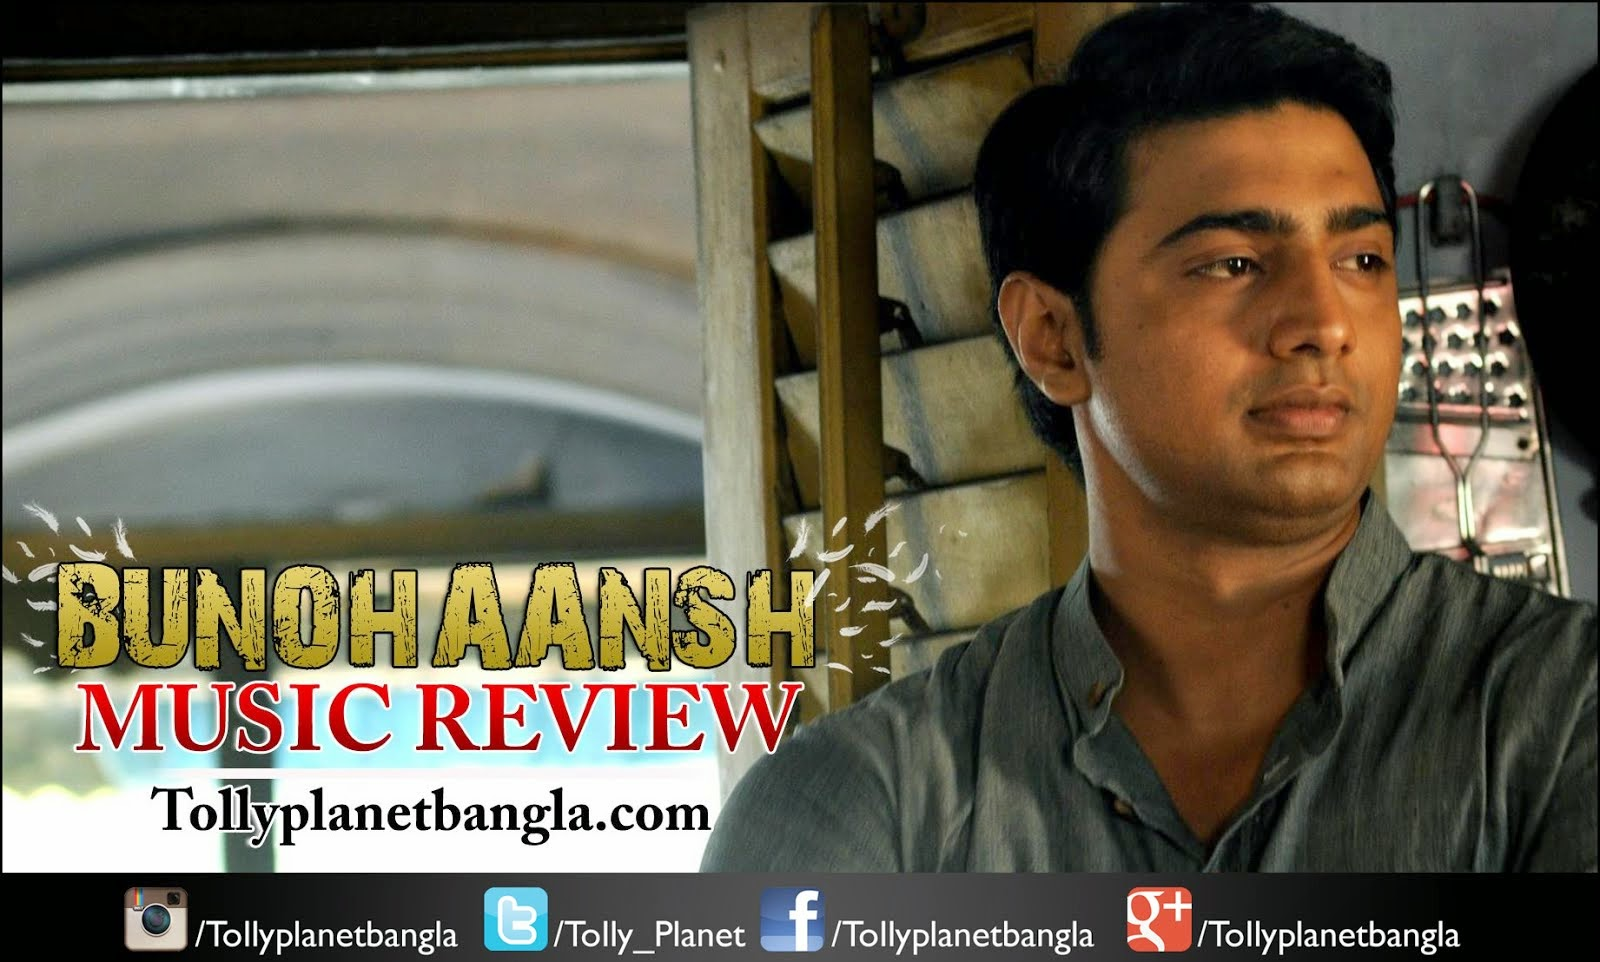 Bunohaansh Music Review